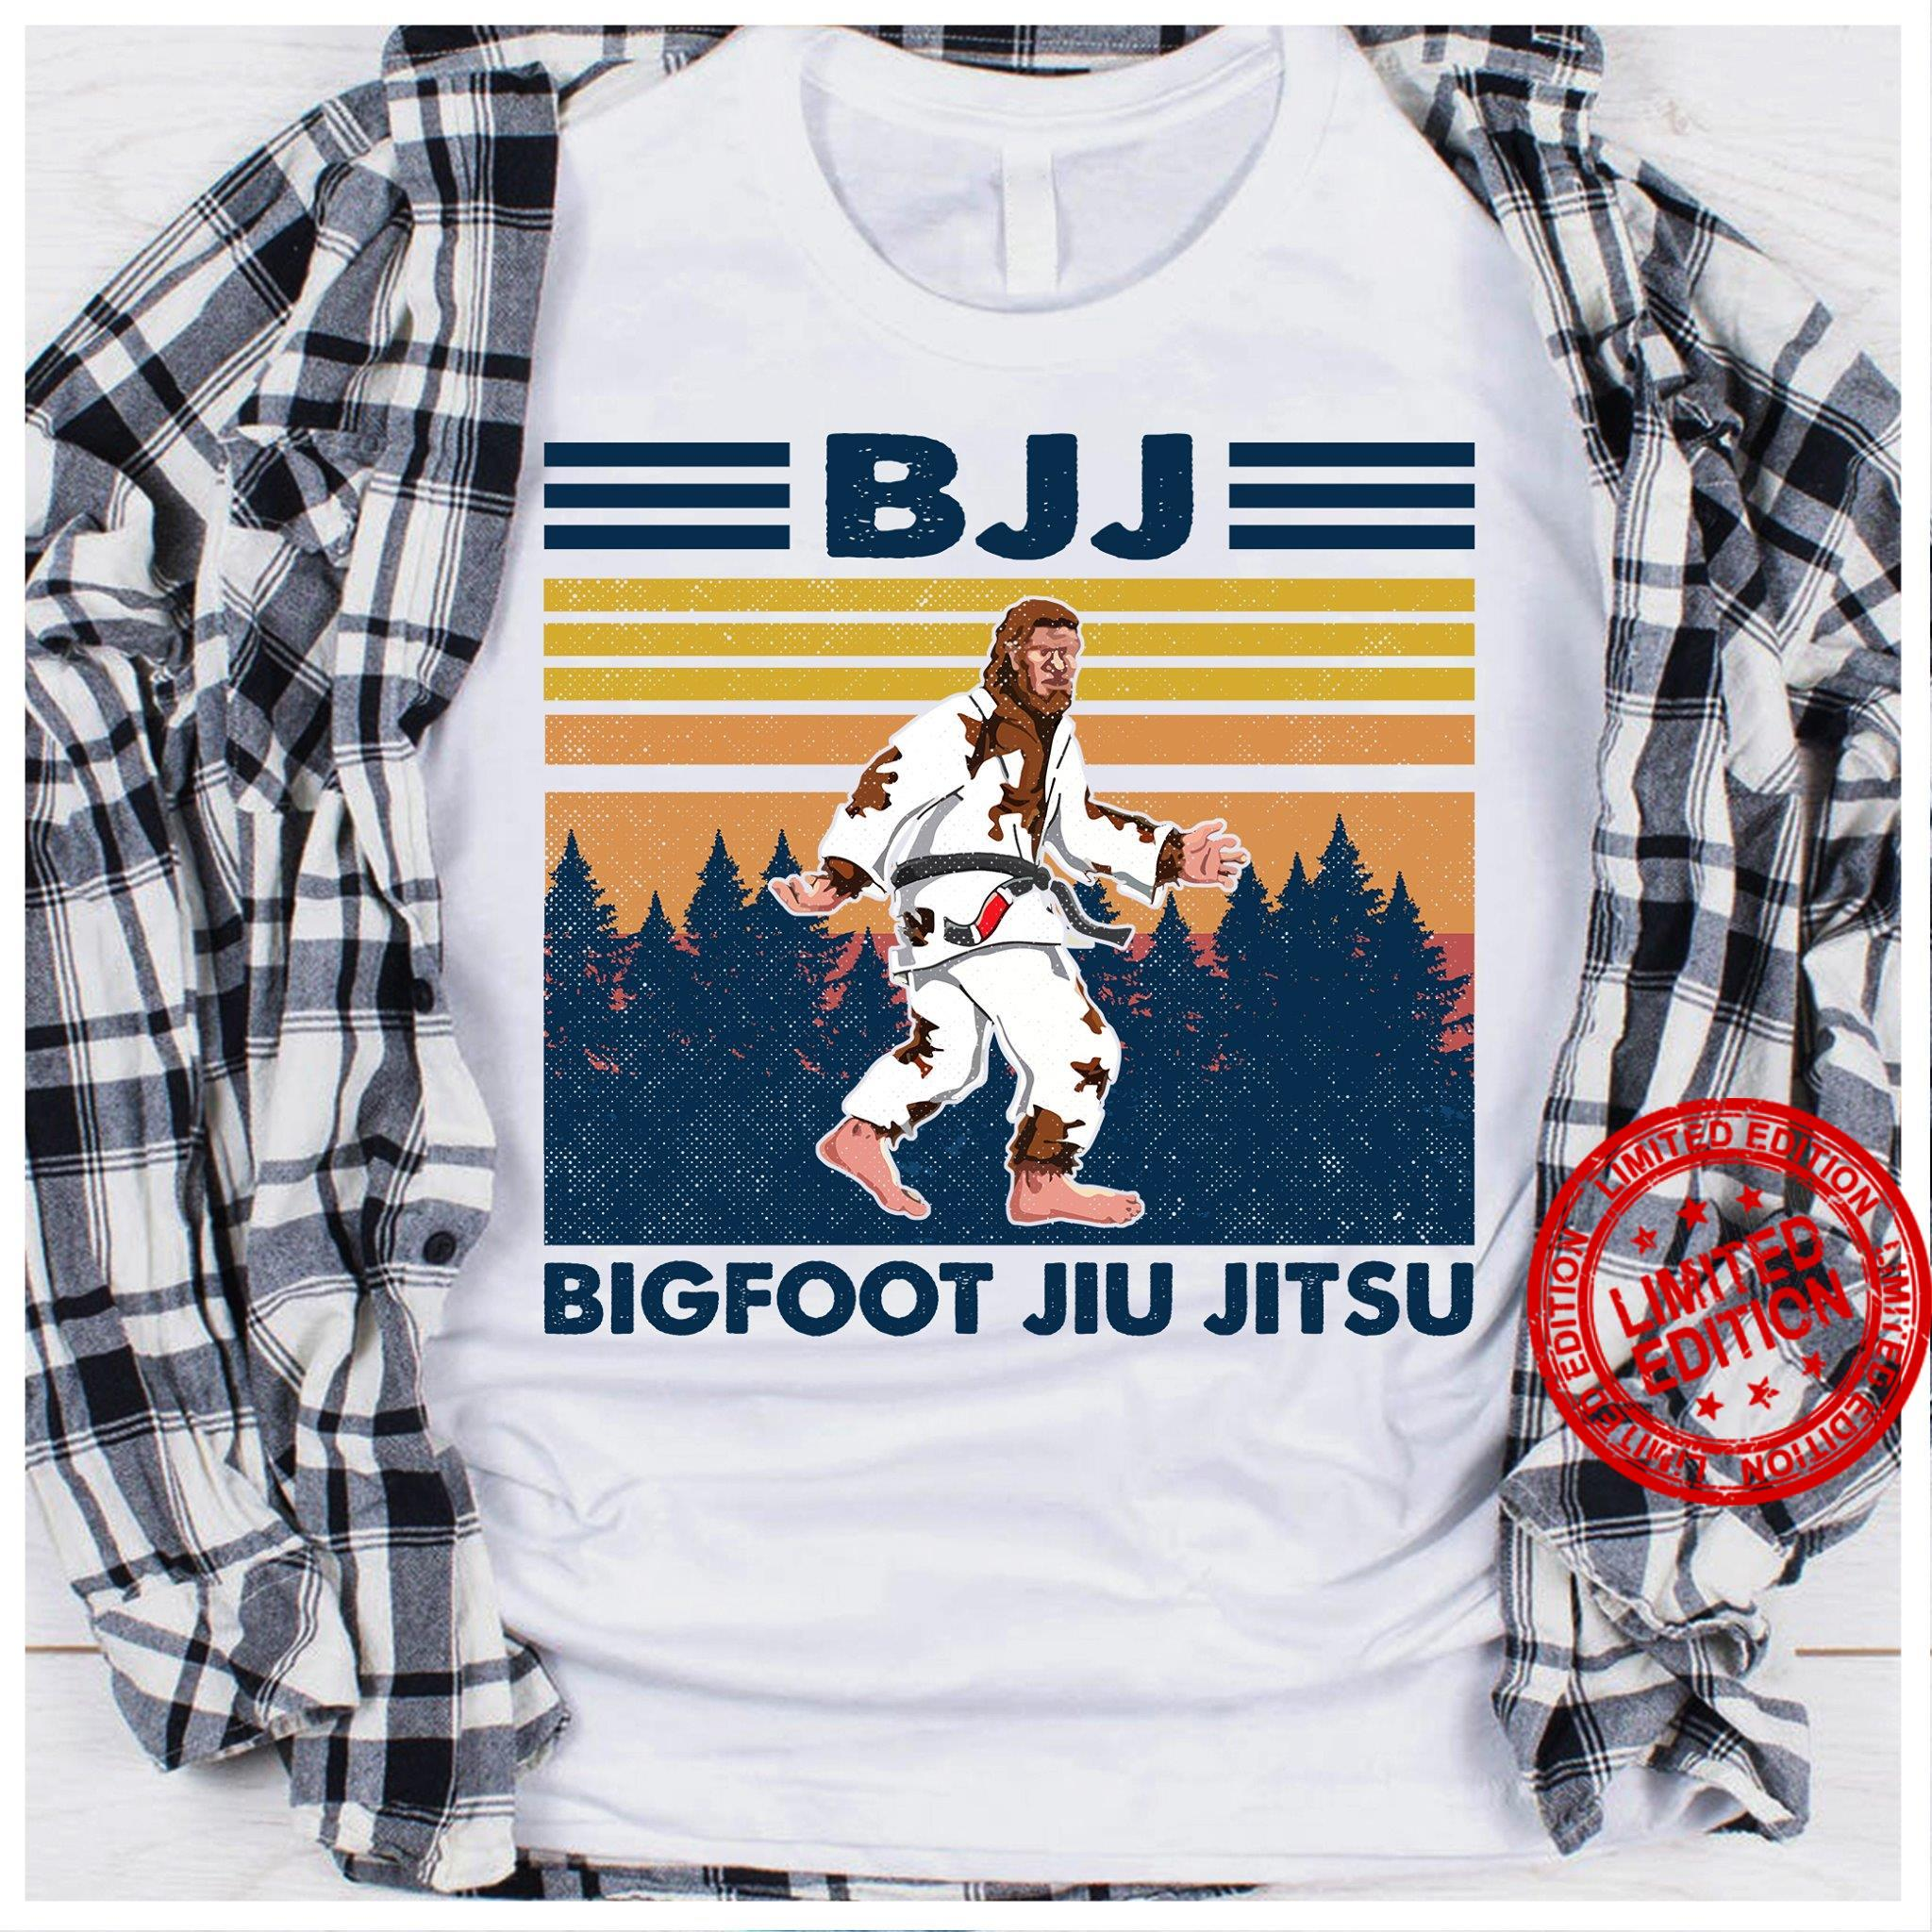 Bjj Bigfoot Jiu Jitsu Shirt